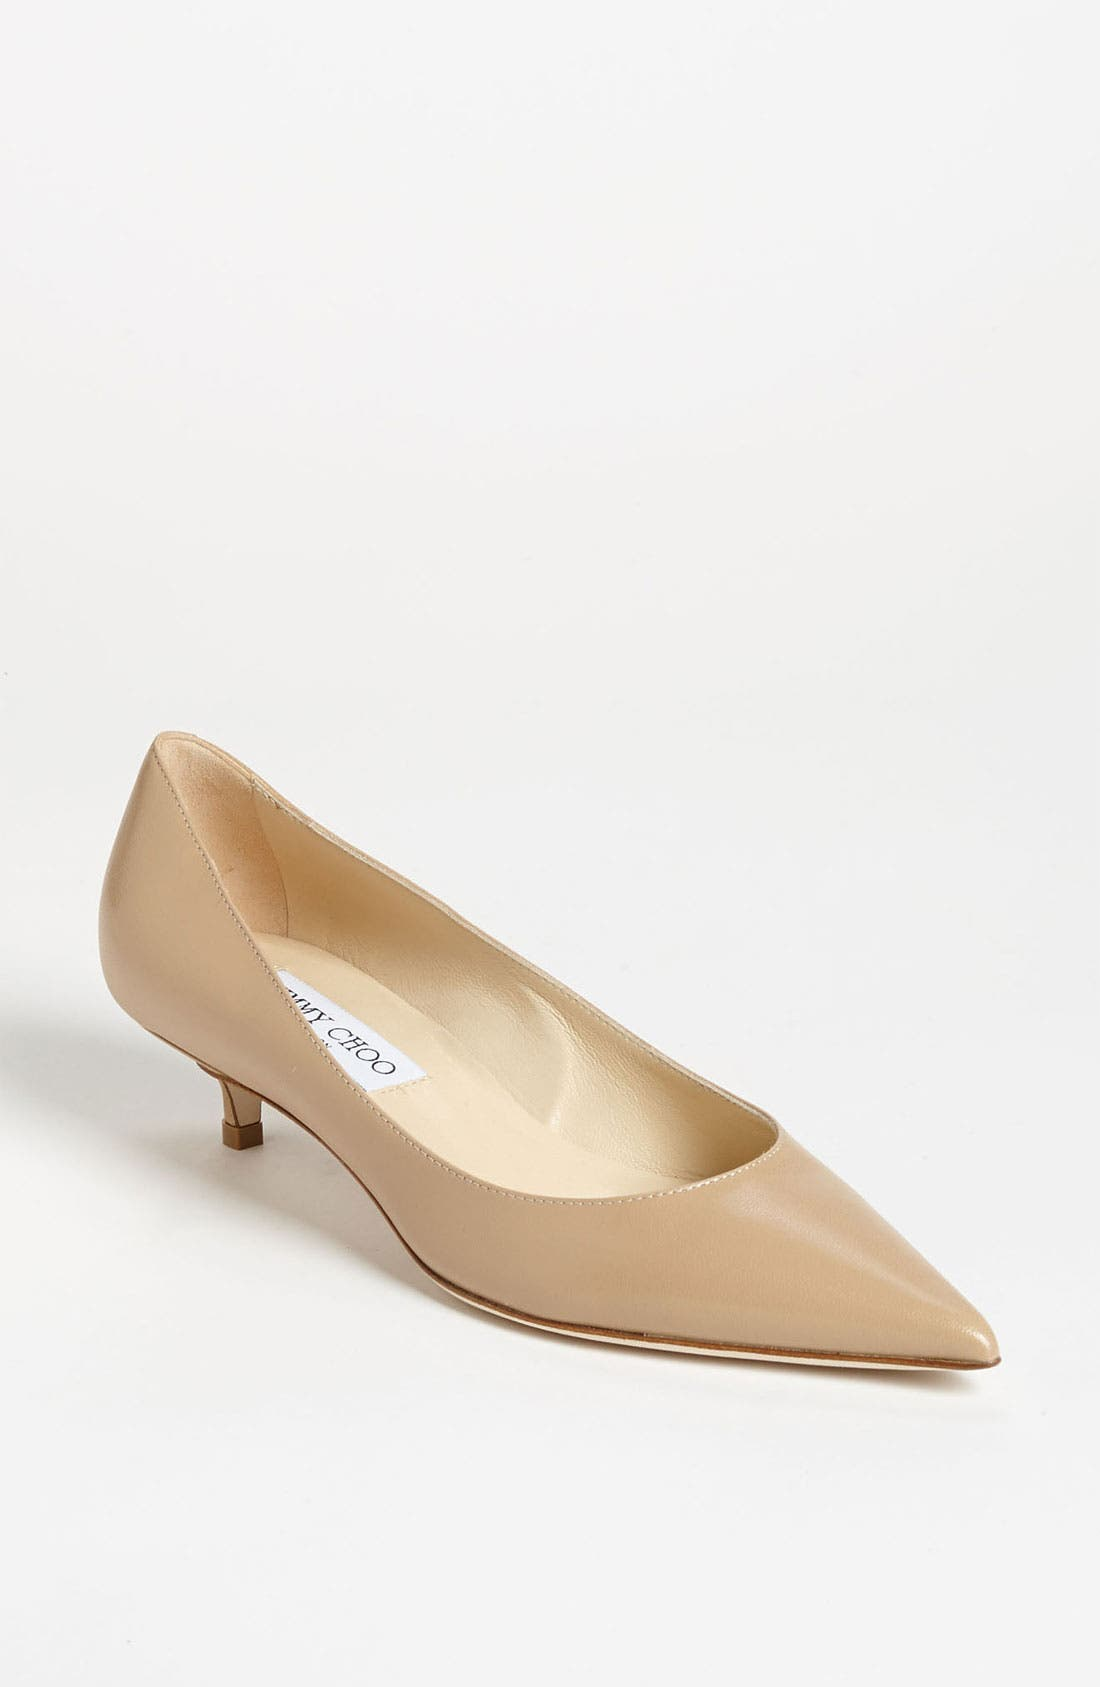 Alternate Image 1 Selected - Jimmy Choo 'Amelia' Pump